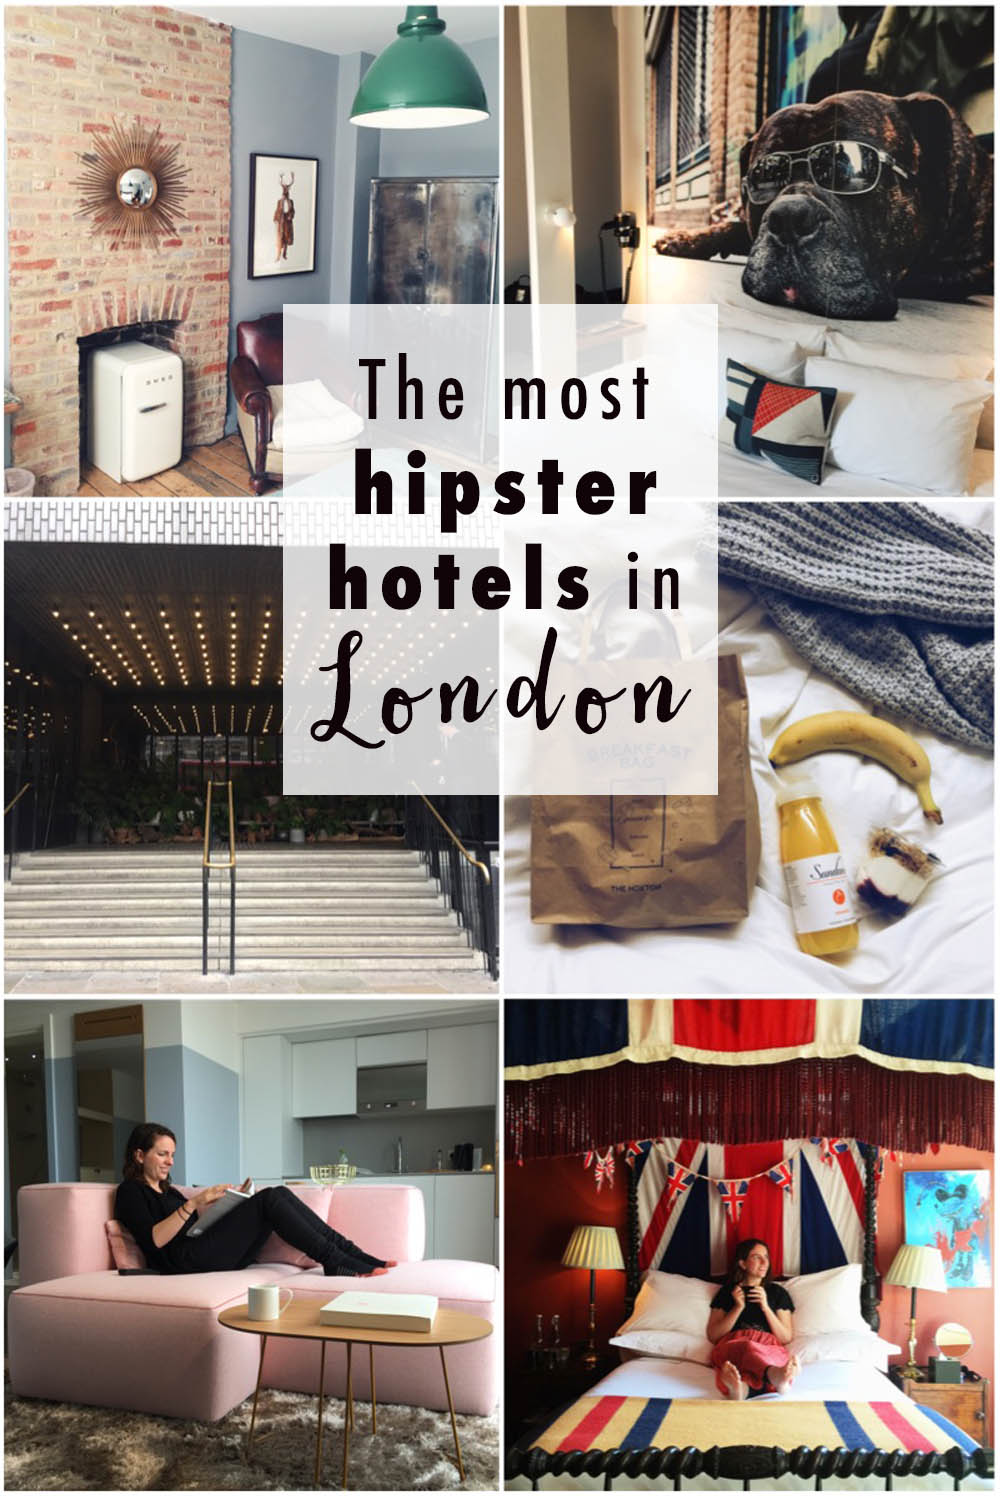 The most hipster hotels in London